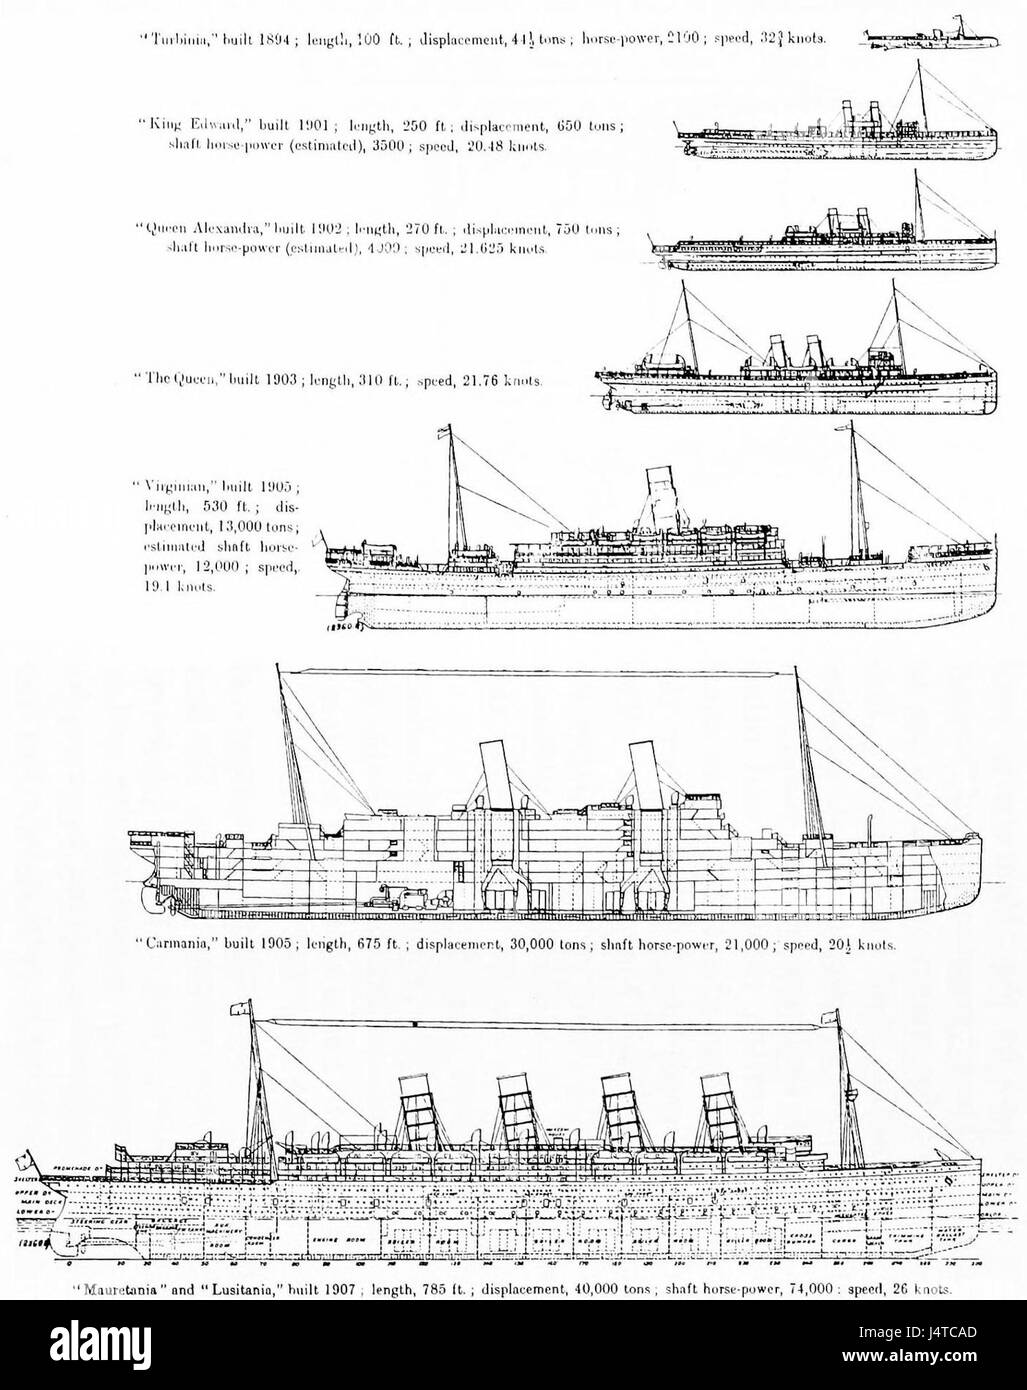 hight resolution of the steam turbine 1911 fig 40 diagram showing growth in the size of turbine propelled merchant ships